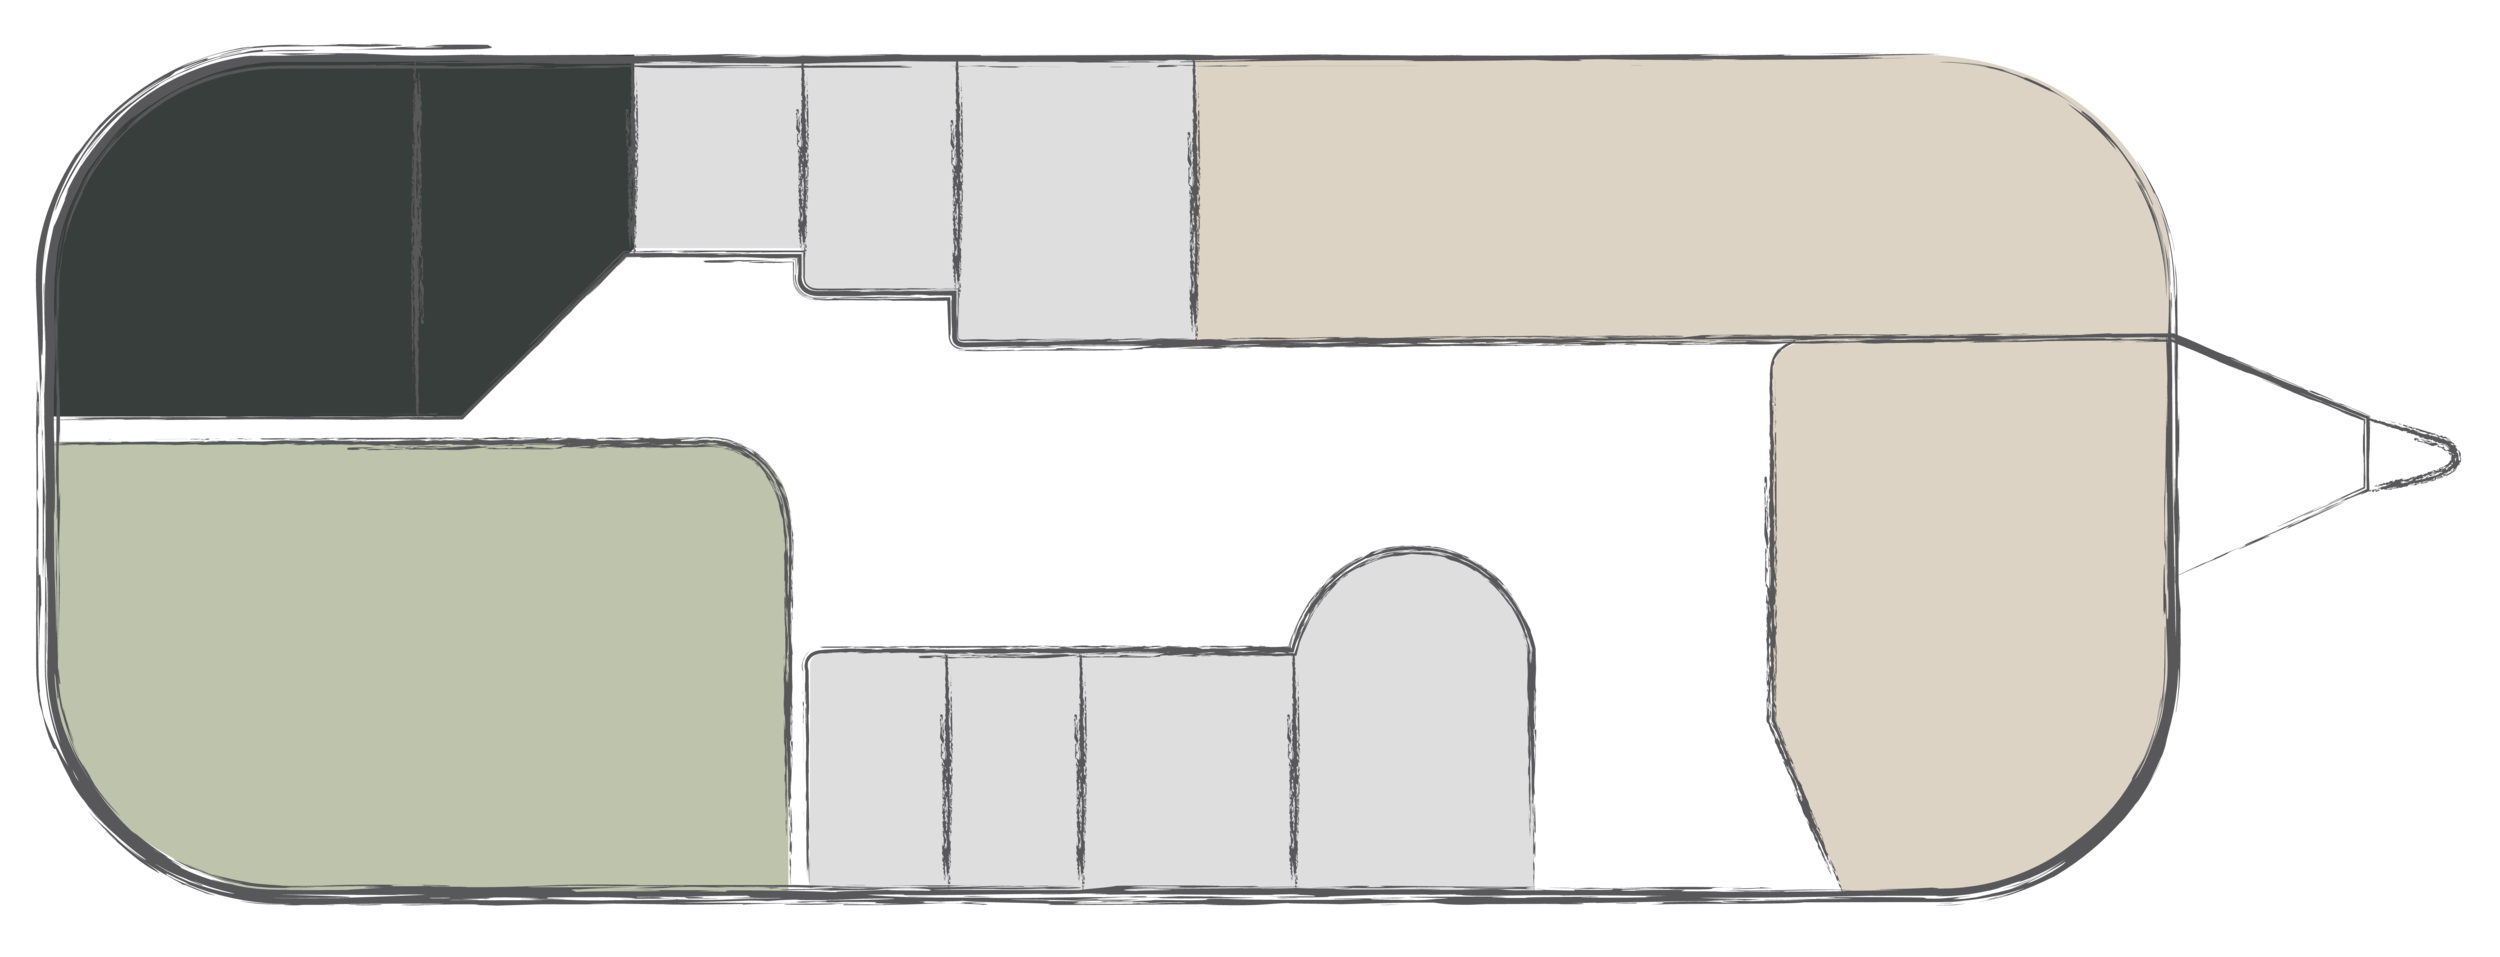 Airstream_layout-02.png